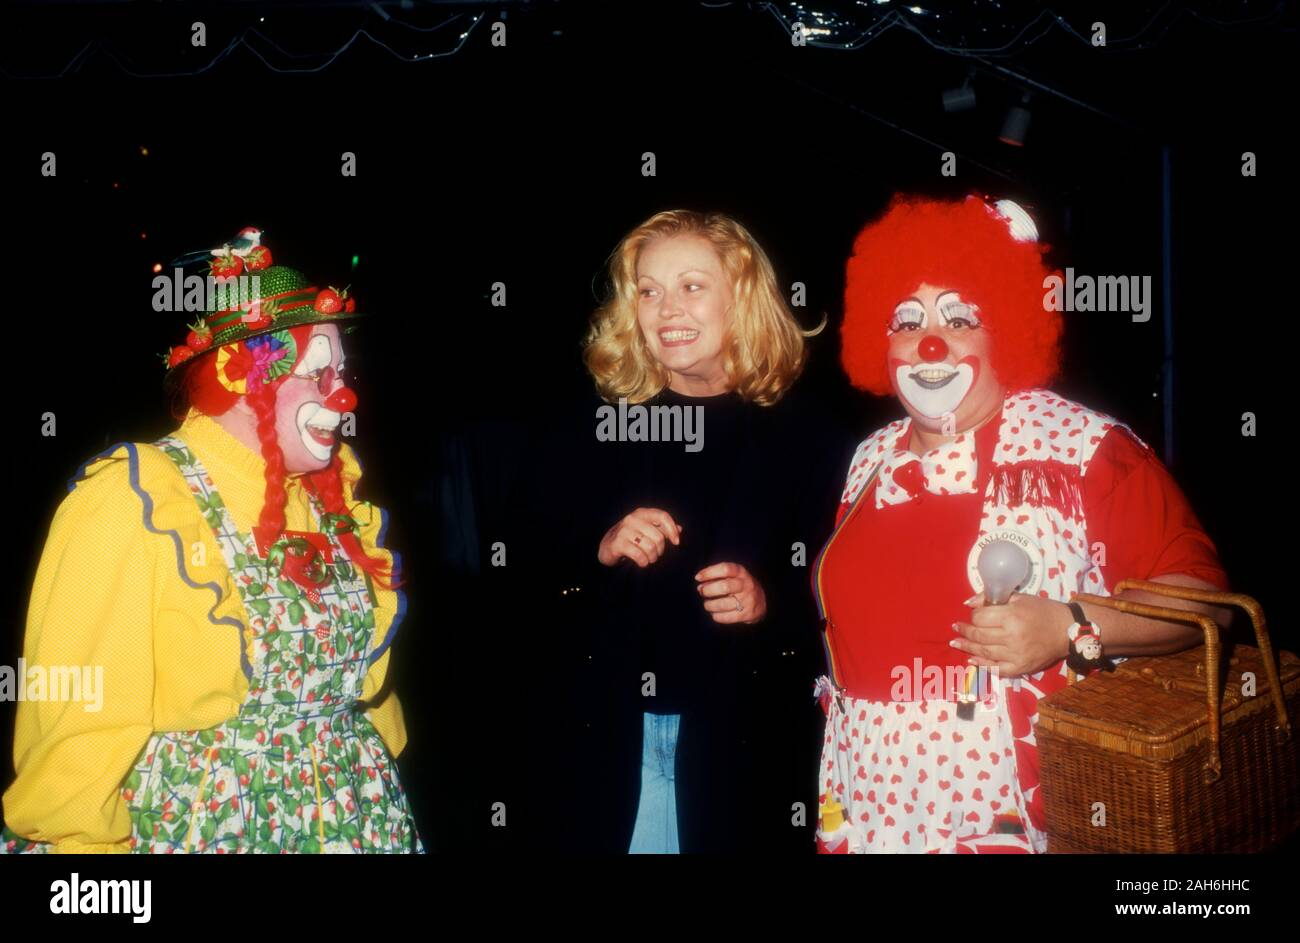 Casper Halloween Party.Casper 1995 Cathy Moriarty High Resolution Stock Photography And Images Alamy